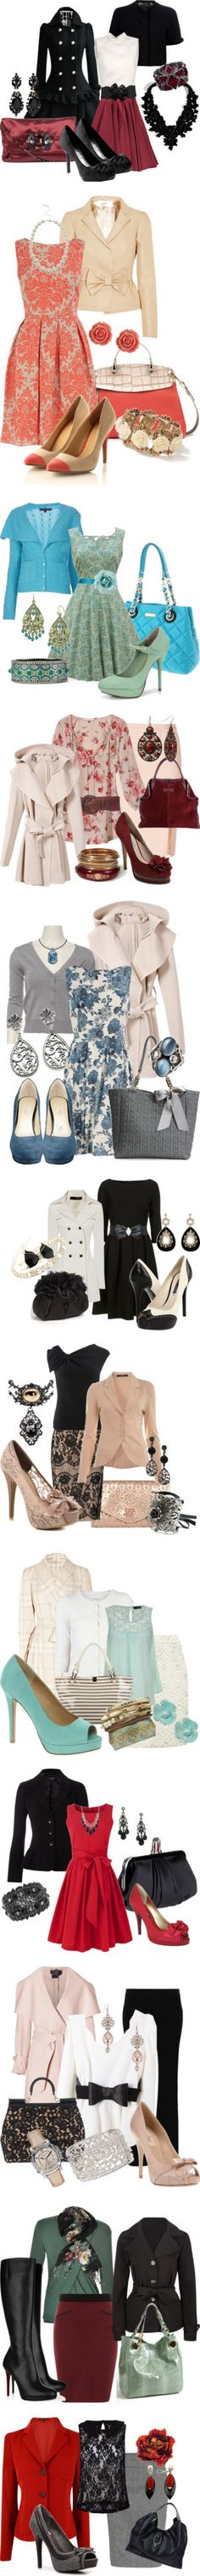 Outfits: Semi-Formal, Business, Dressy Casual...all of these are so classy and feminine!